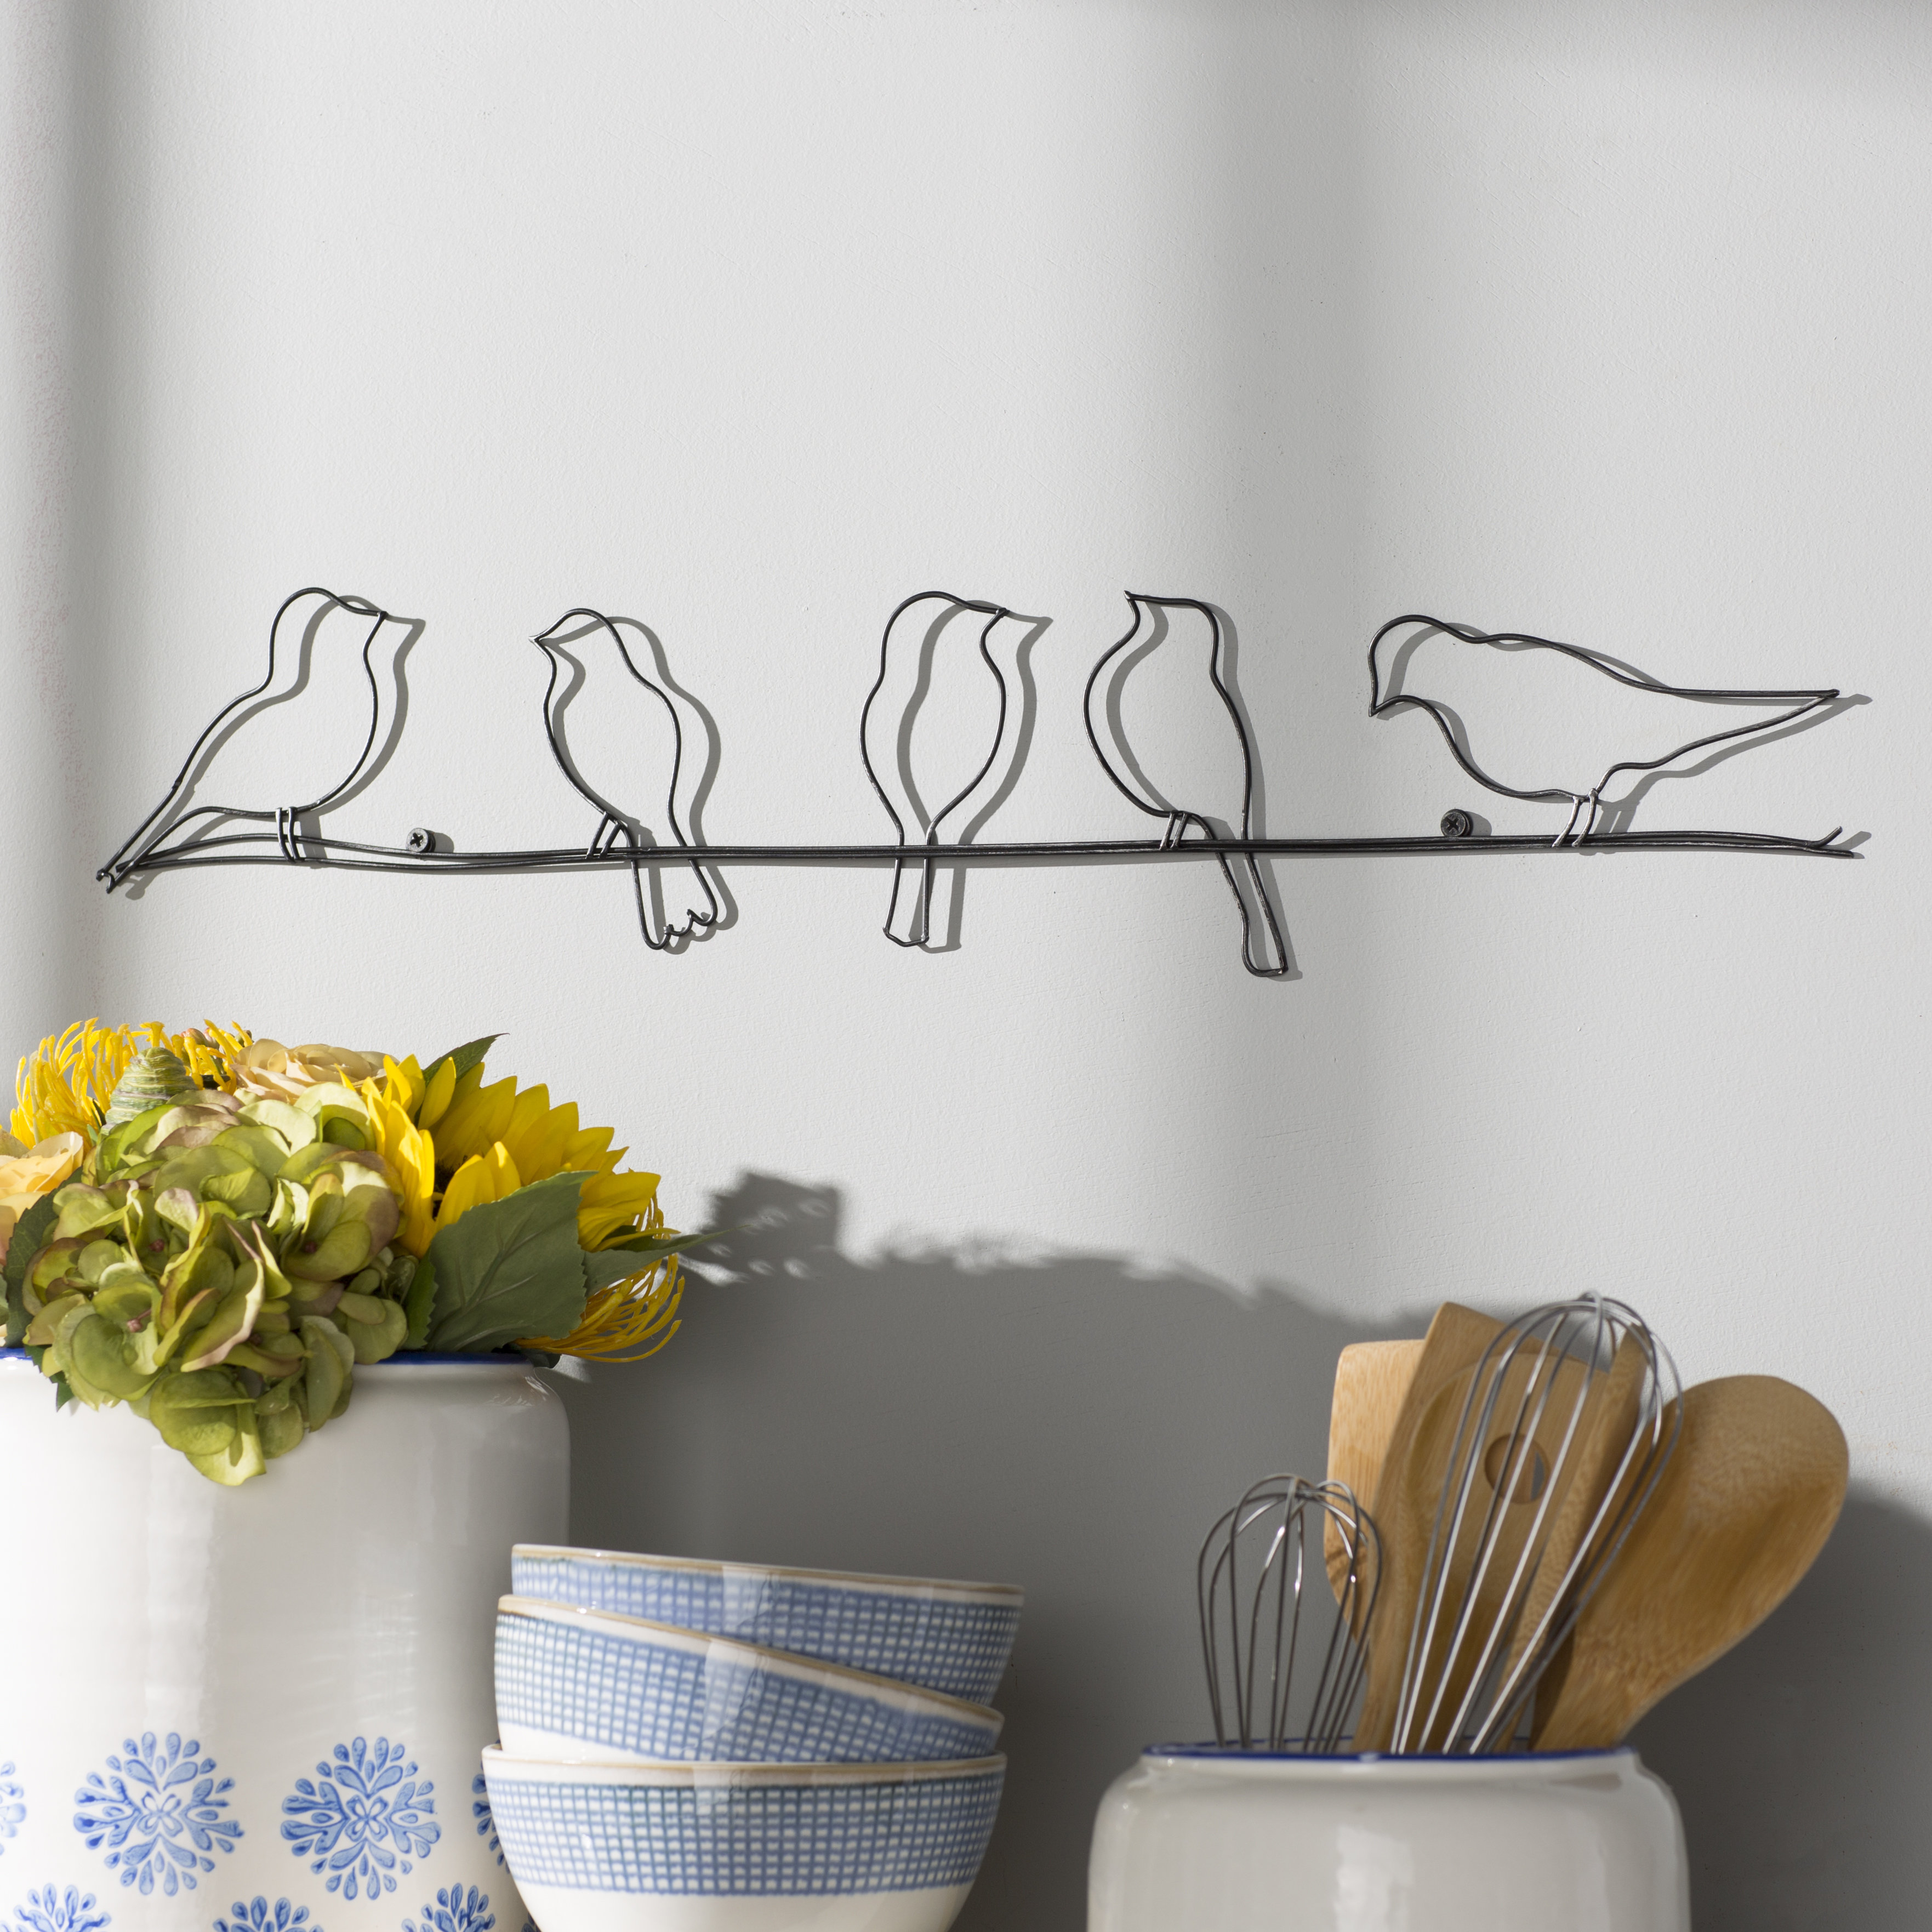 2020 Desford Leaf Wall Decor In Rioux Birds On A Wire Wall Décor & Reviews (View 1 of 20)